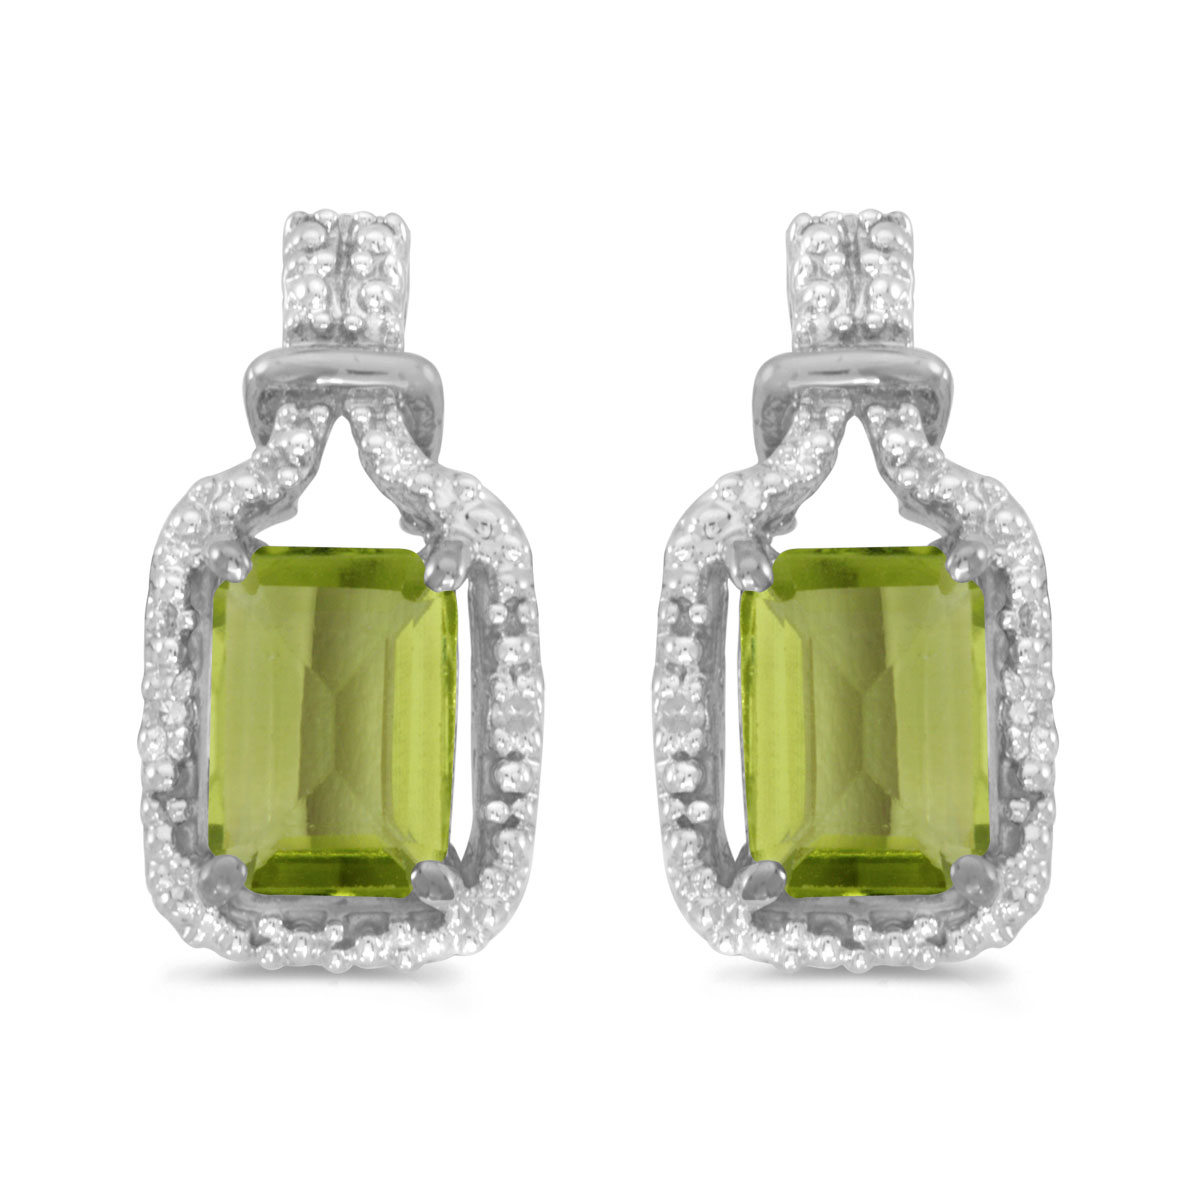 These 14k white gold emerald-cut peridot and diamond earrings feature 7x5 mm genuine natural peri...